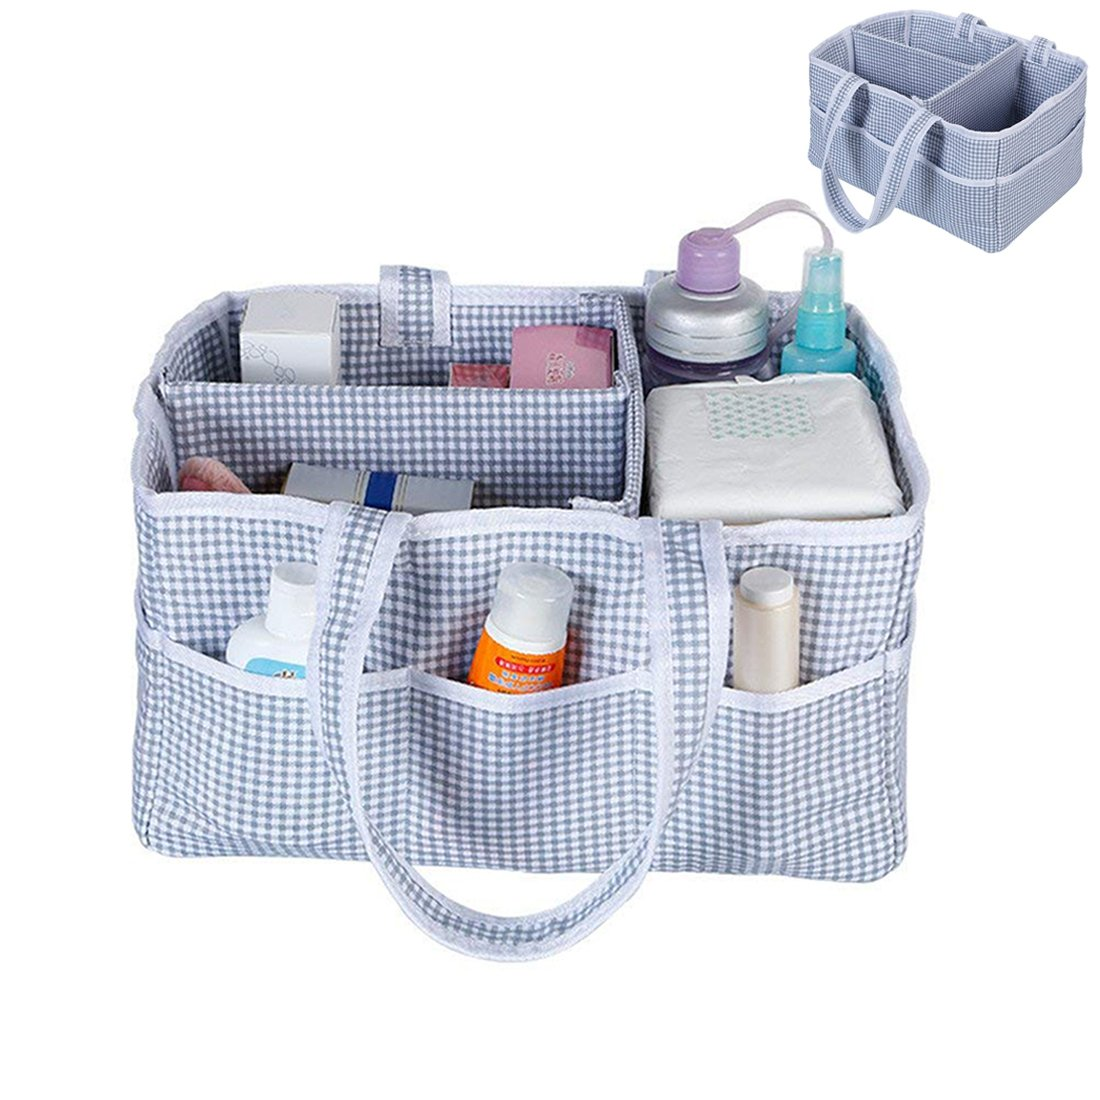 Ayans Baby Diaper Caddy Organizer - Nursery Storage Bin Nappy Changing Table Basket | Large Portable Tote Bag for Diapers Wipes Toys, Great gift for Baby Shower, Newborn Registry